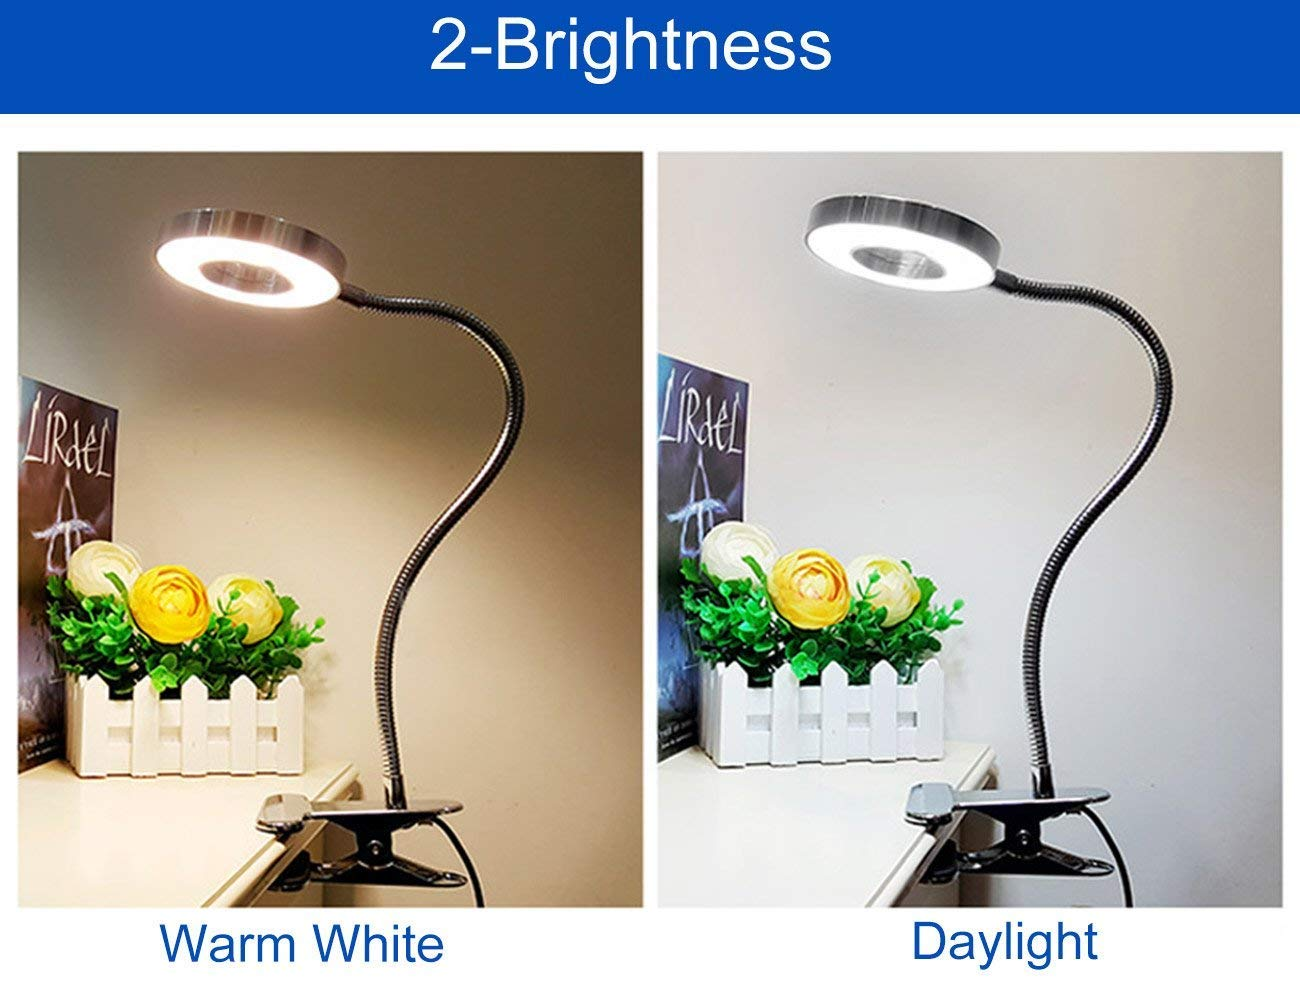 6W LED USB Dimmable Clip on Reading Light,Clip Laptop Lamp for Book,Piano,Bed Headboard,Desk,Eye-care 2 Light Color Switchable, Adapter Included(Black) by W-LITE (Image #7)